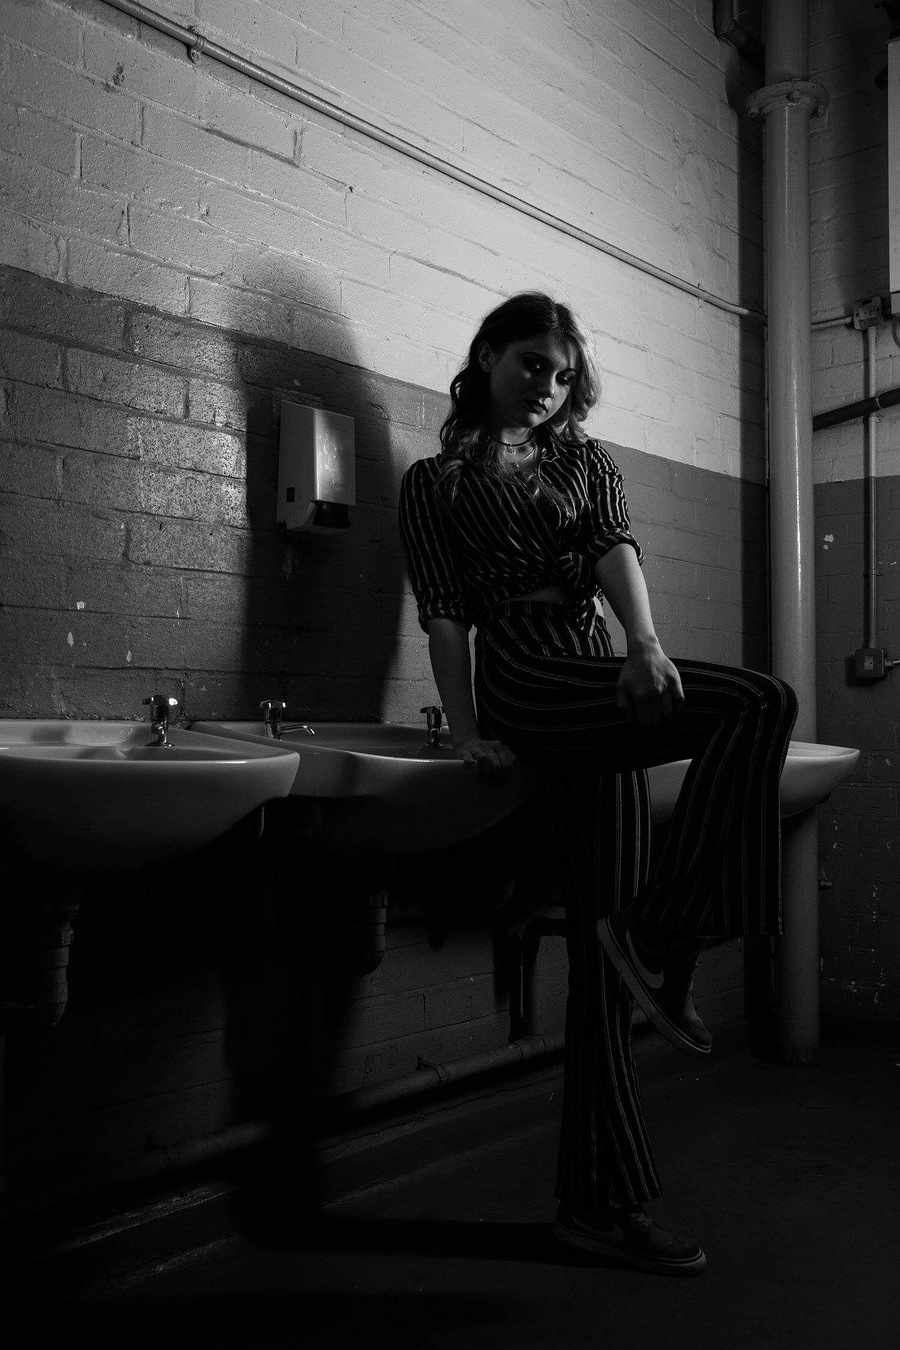 The men's rooms / Photography by Jarv, Model Alice Bates / Uploaded 13th November 2018 @ 09:39 PM